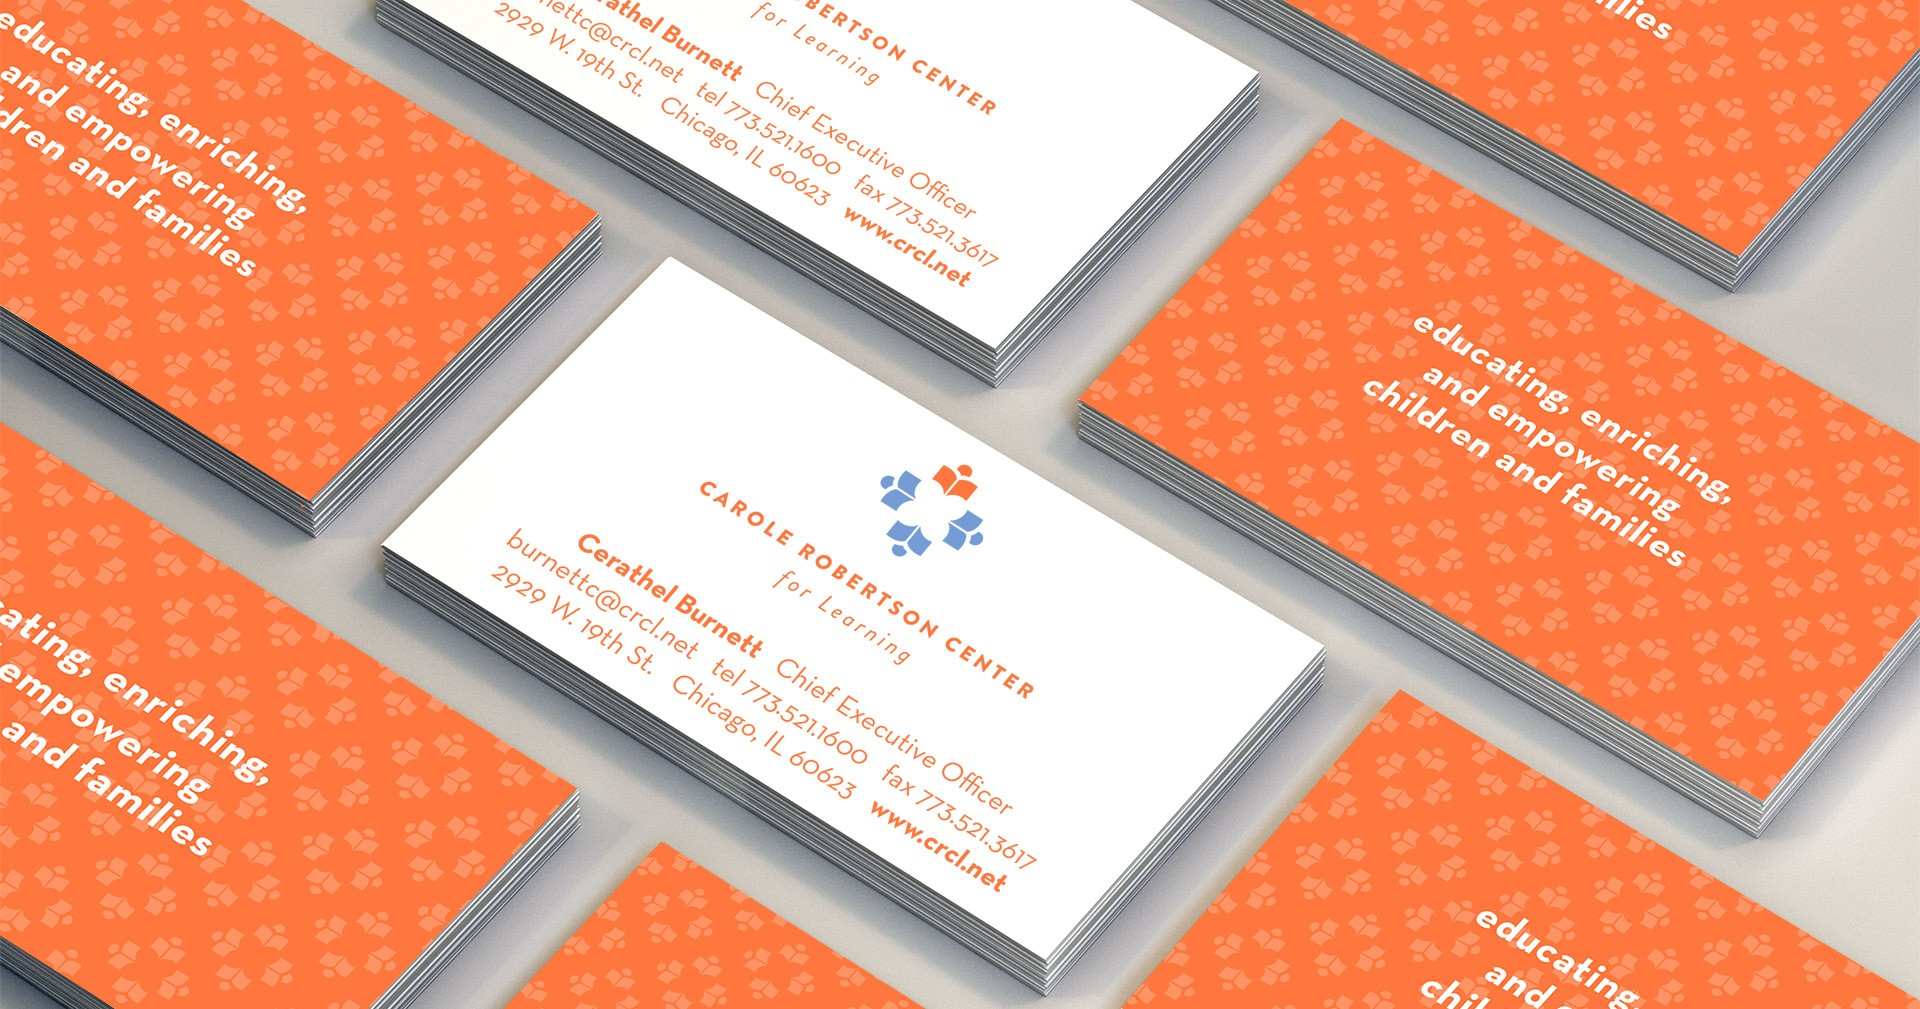 Carole Robertson Center for Learning business cards